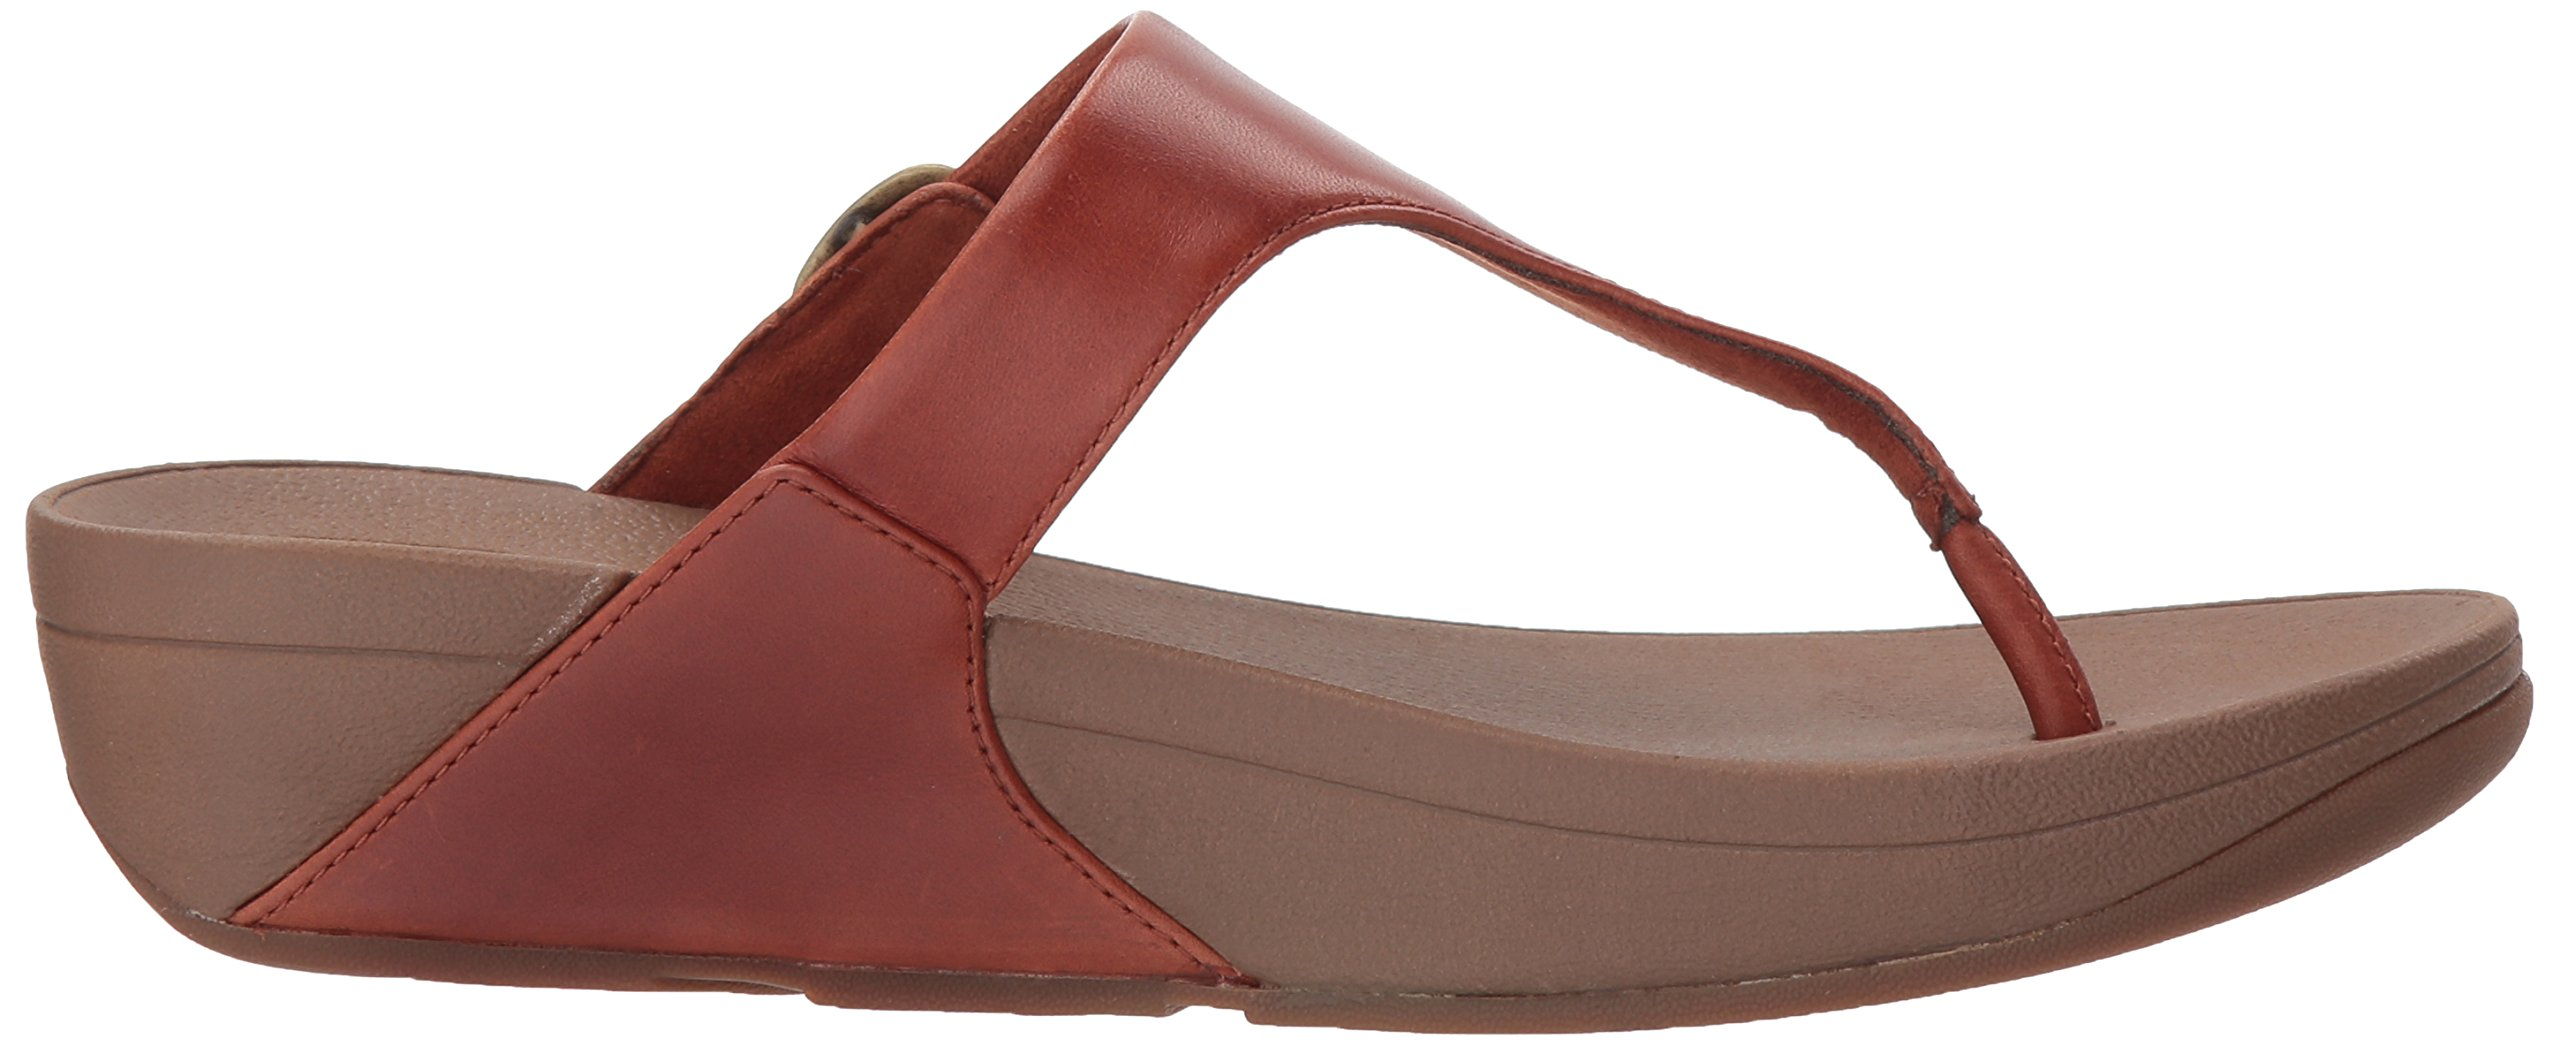 FitFlop Women's The Skinny Leather Toe-Thong Sandal, Dark Tan, 10 M US by FitFlop (Image #7)